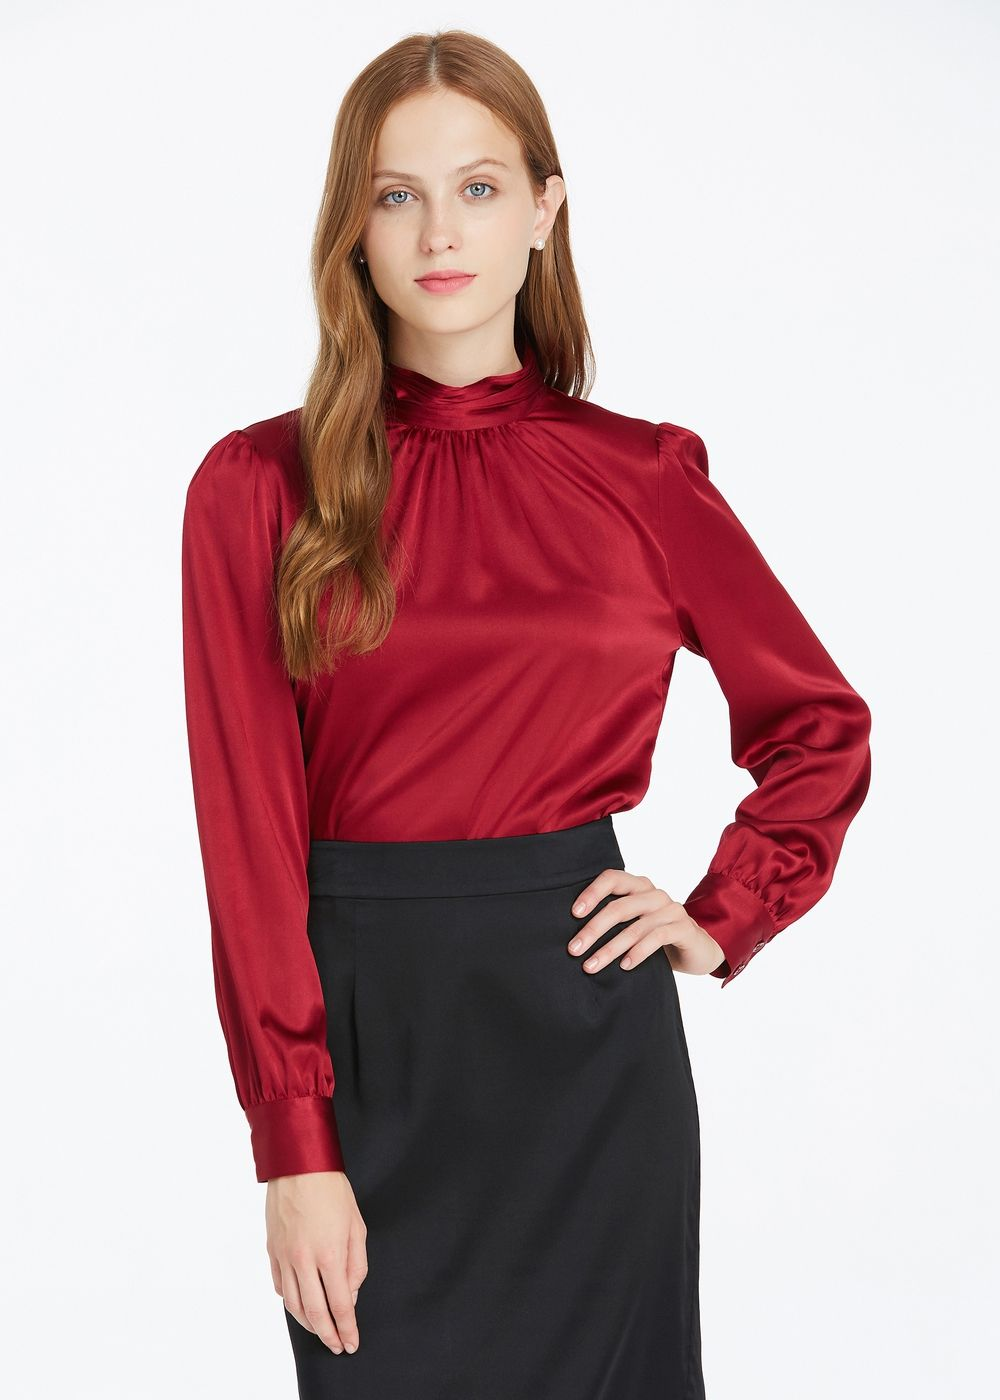 65023c7266484 19MM Retro Style Silk Blouse Hot Sale From Lilysilk